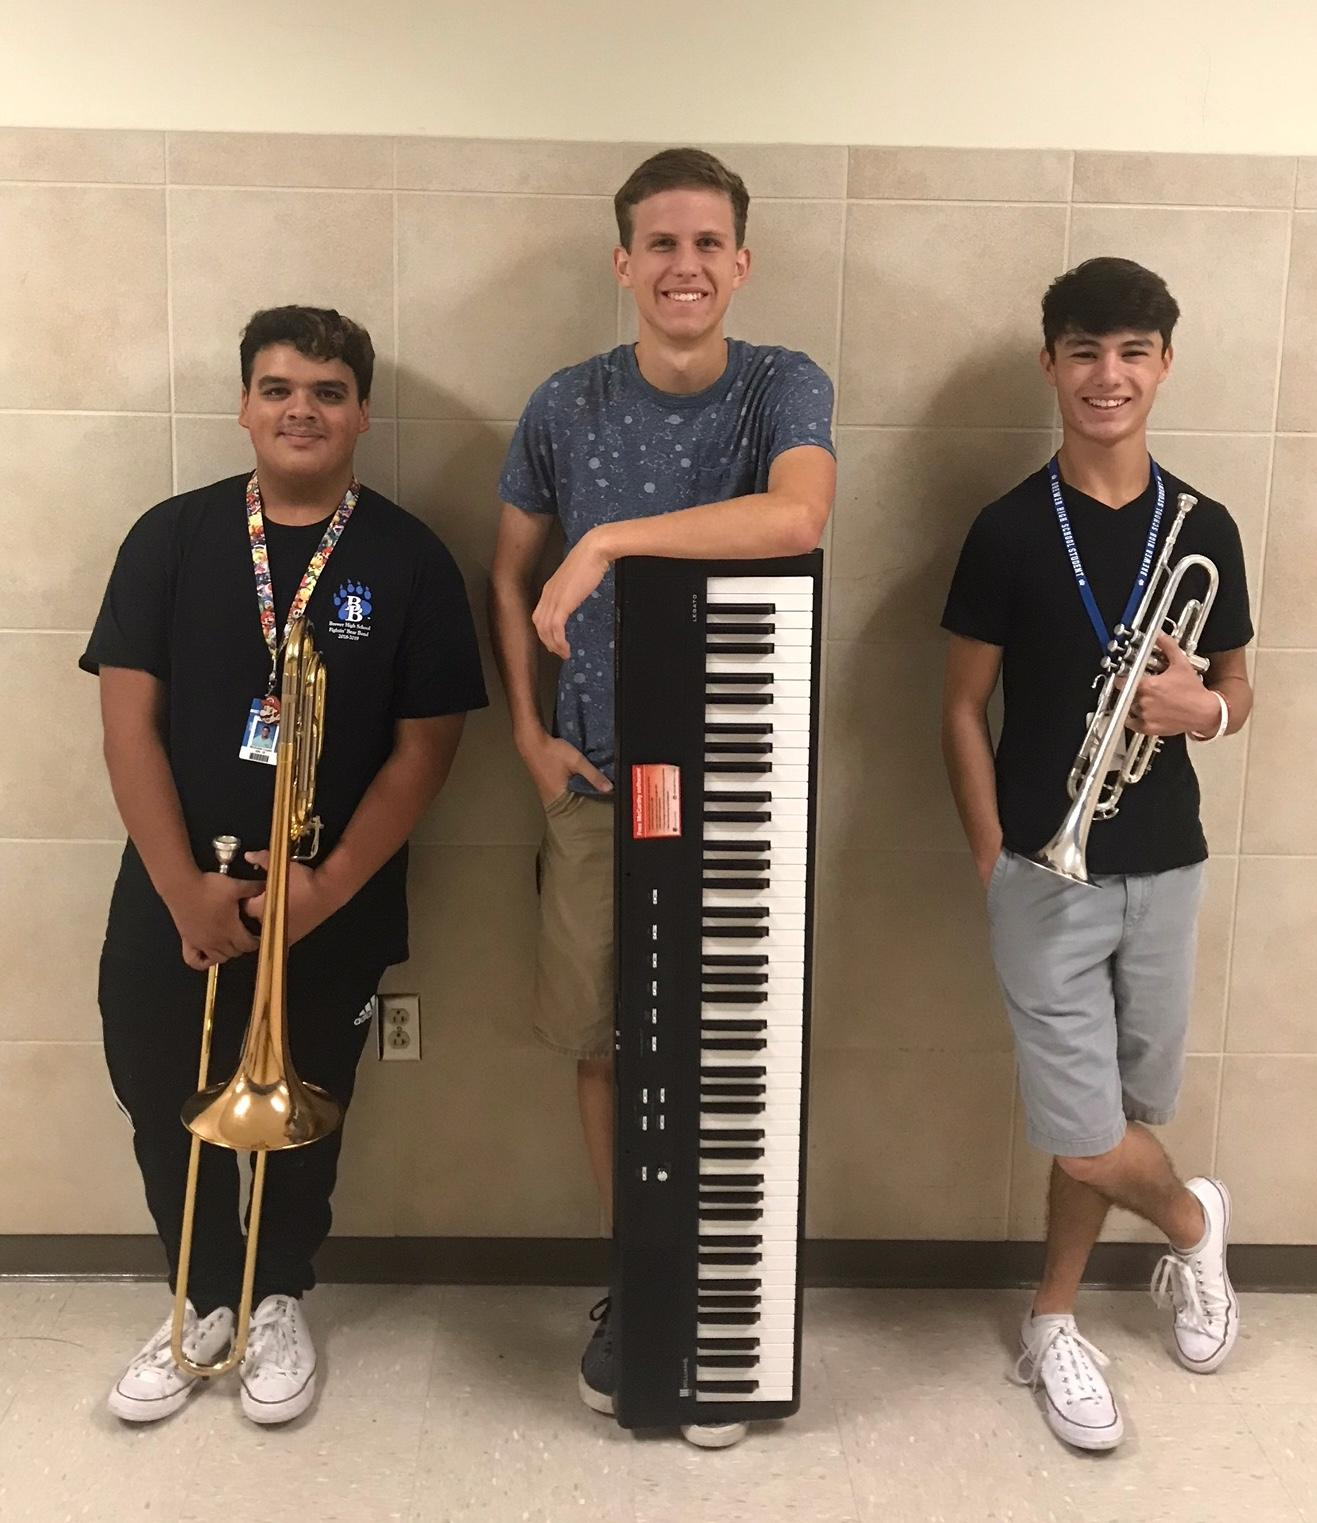 The Brewer High School band members were selected to the Region 30 All Region Jazz Band: Adam Bradley, piano; Aiden Owens, trumpet; and Nick Lopez, trombone.